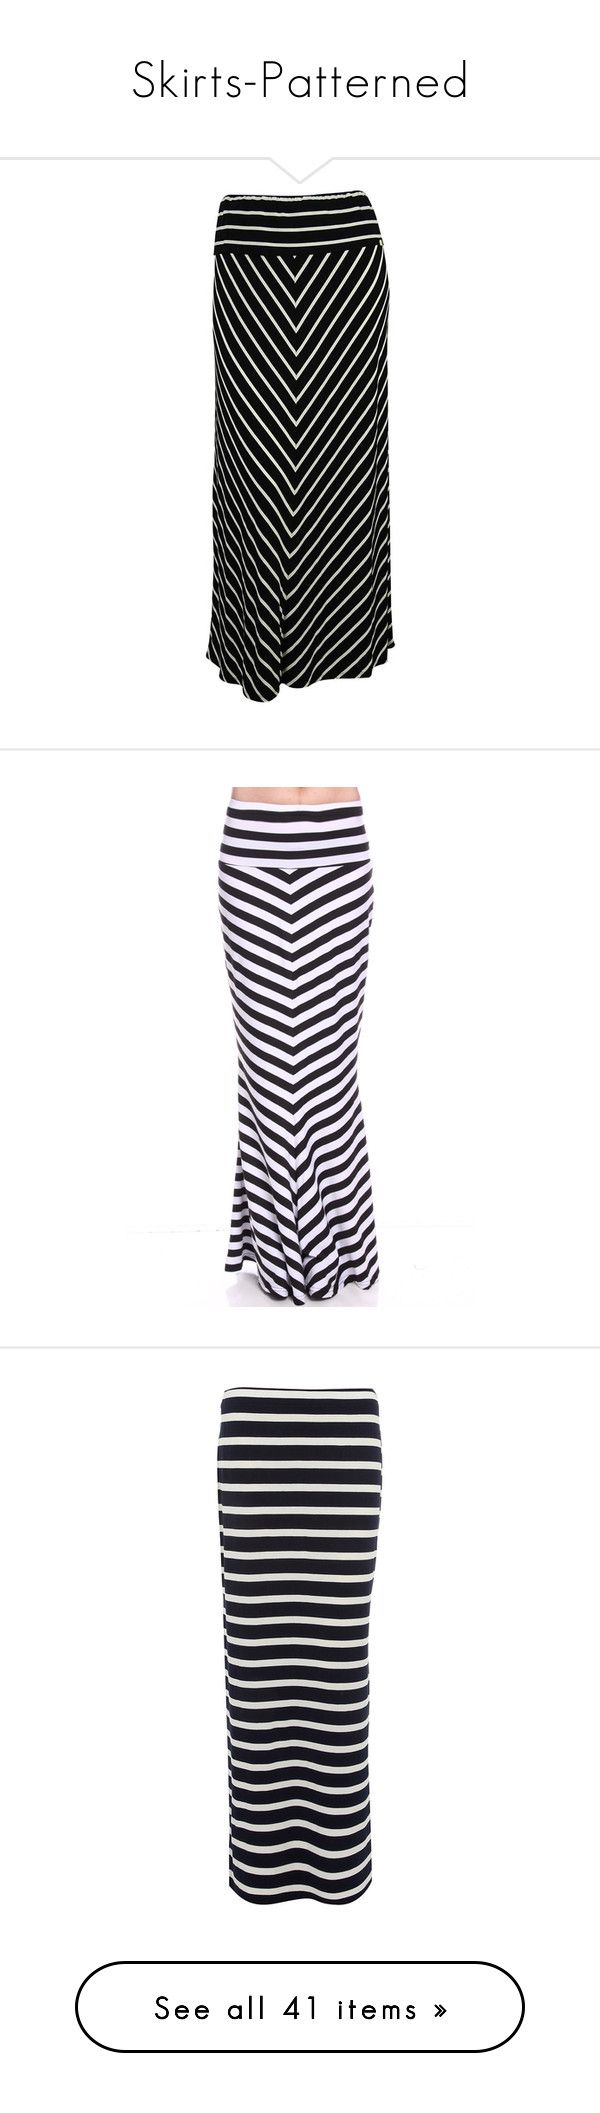 """Skirts-Patterned"" by jensmith1228 ❤ liked on Polyvore featuring skirts, plus size, striped maxi skirt, long skirts, stripe long skirt, plus size striped skirt, long striped skirt, maxi skirt, black and white skirt and black white maxi skirt"